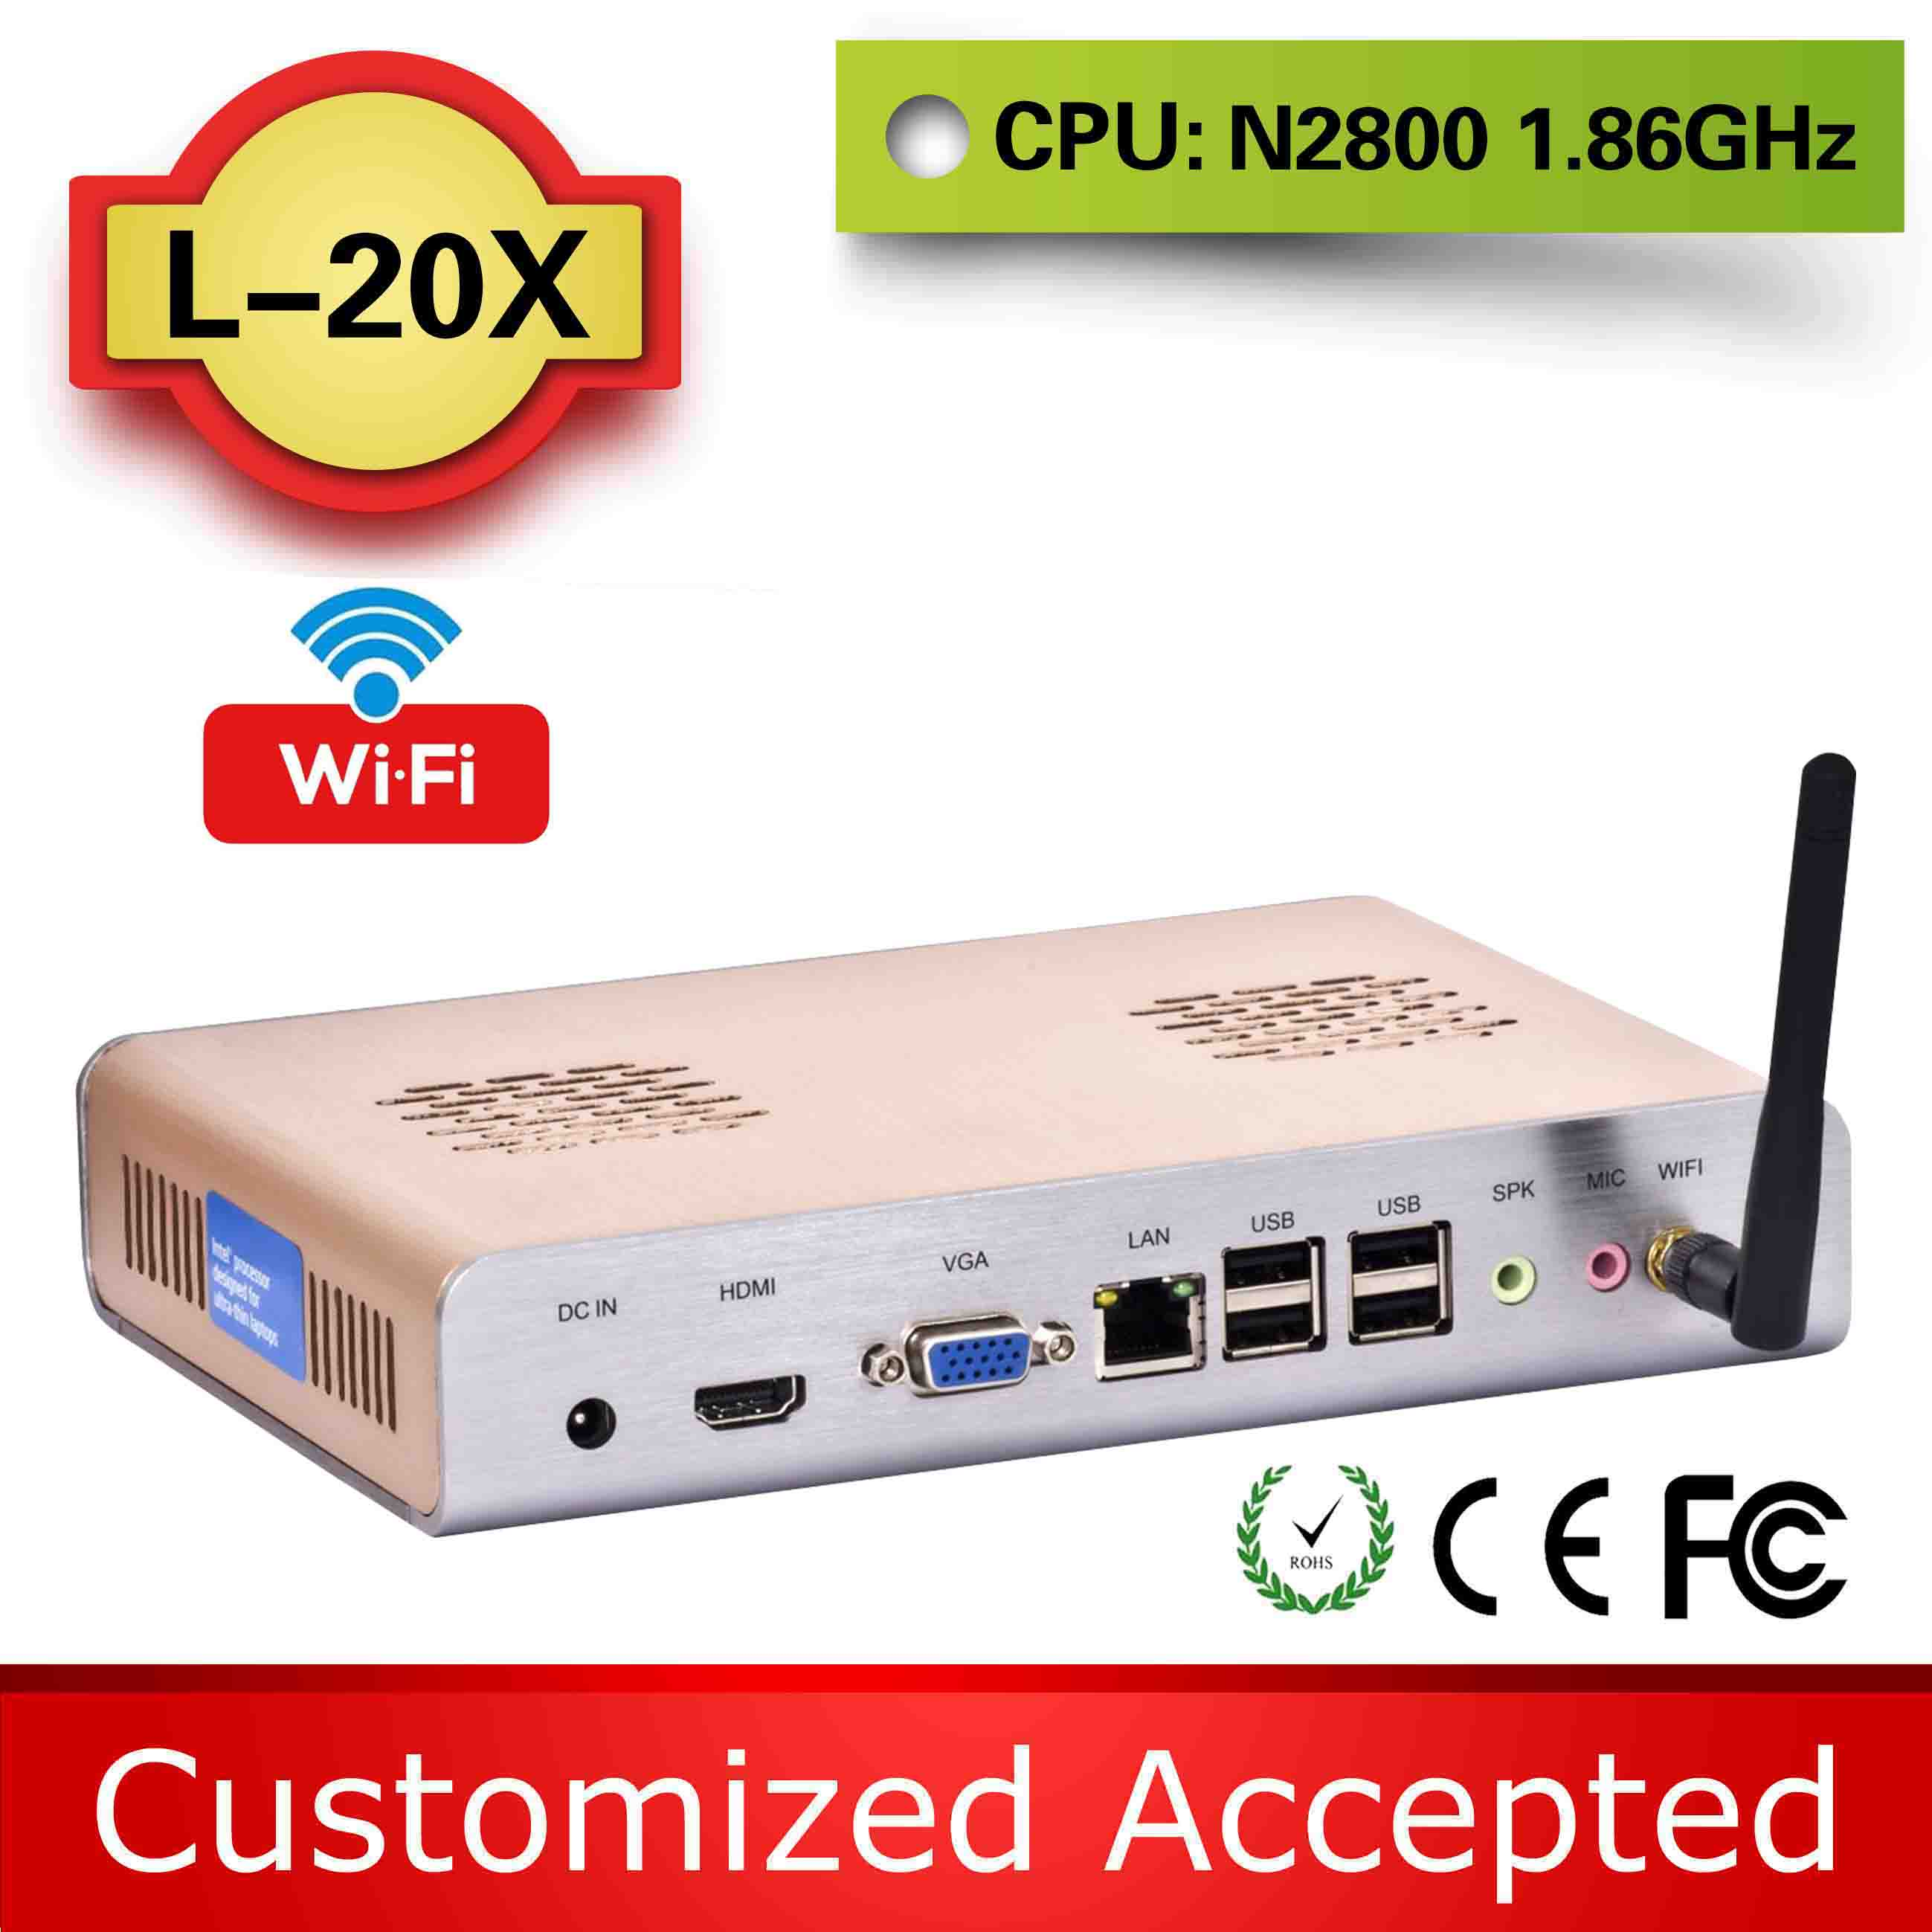 The cheapest xbmc tv box netbook laptop atom mini pc L-20X N2800 4g ram 320g hdd support Touchpad(China (Mainland))